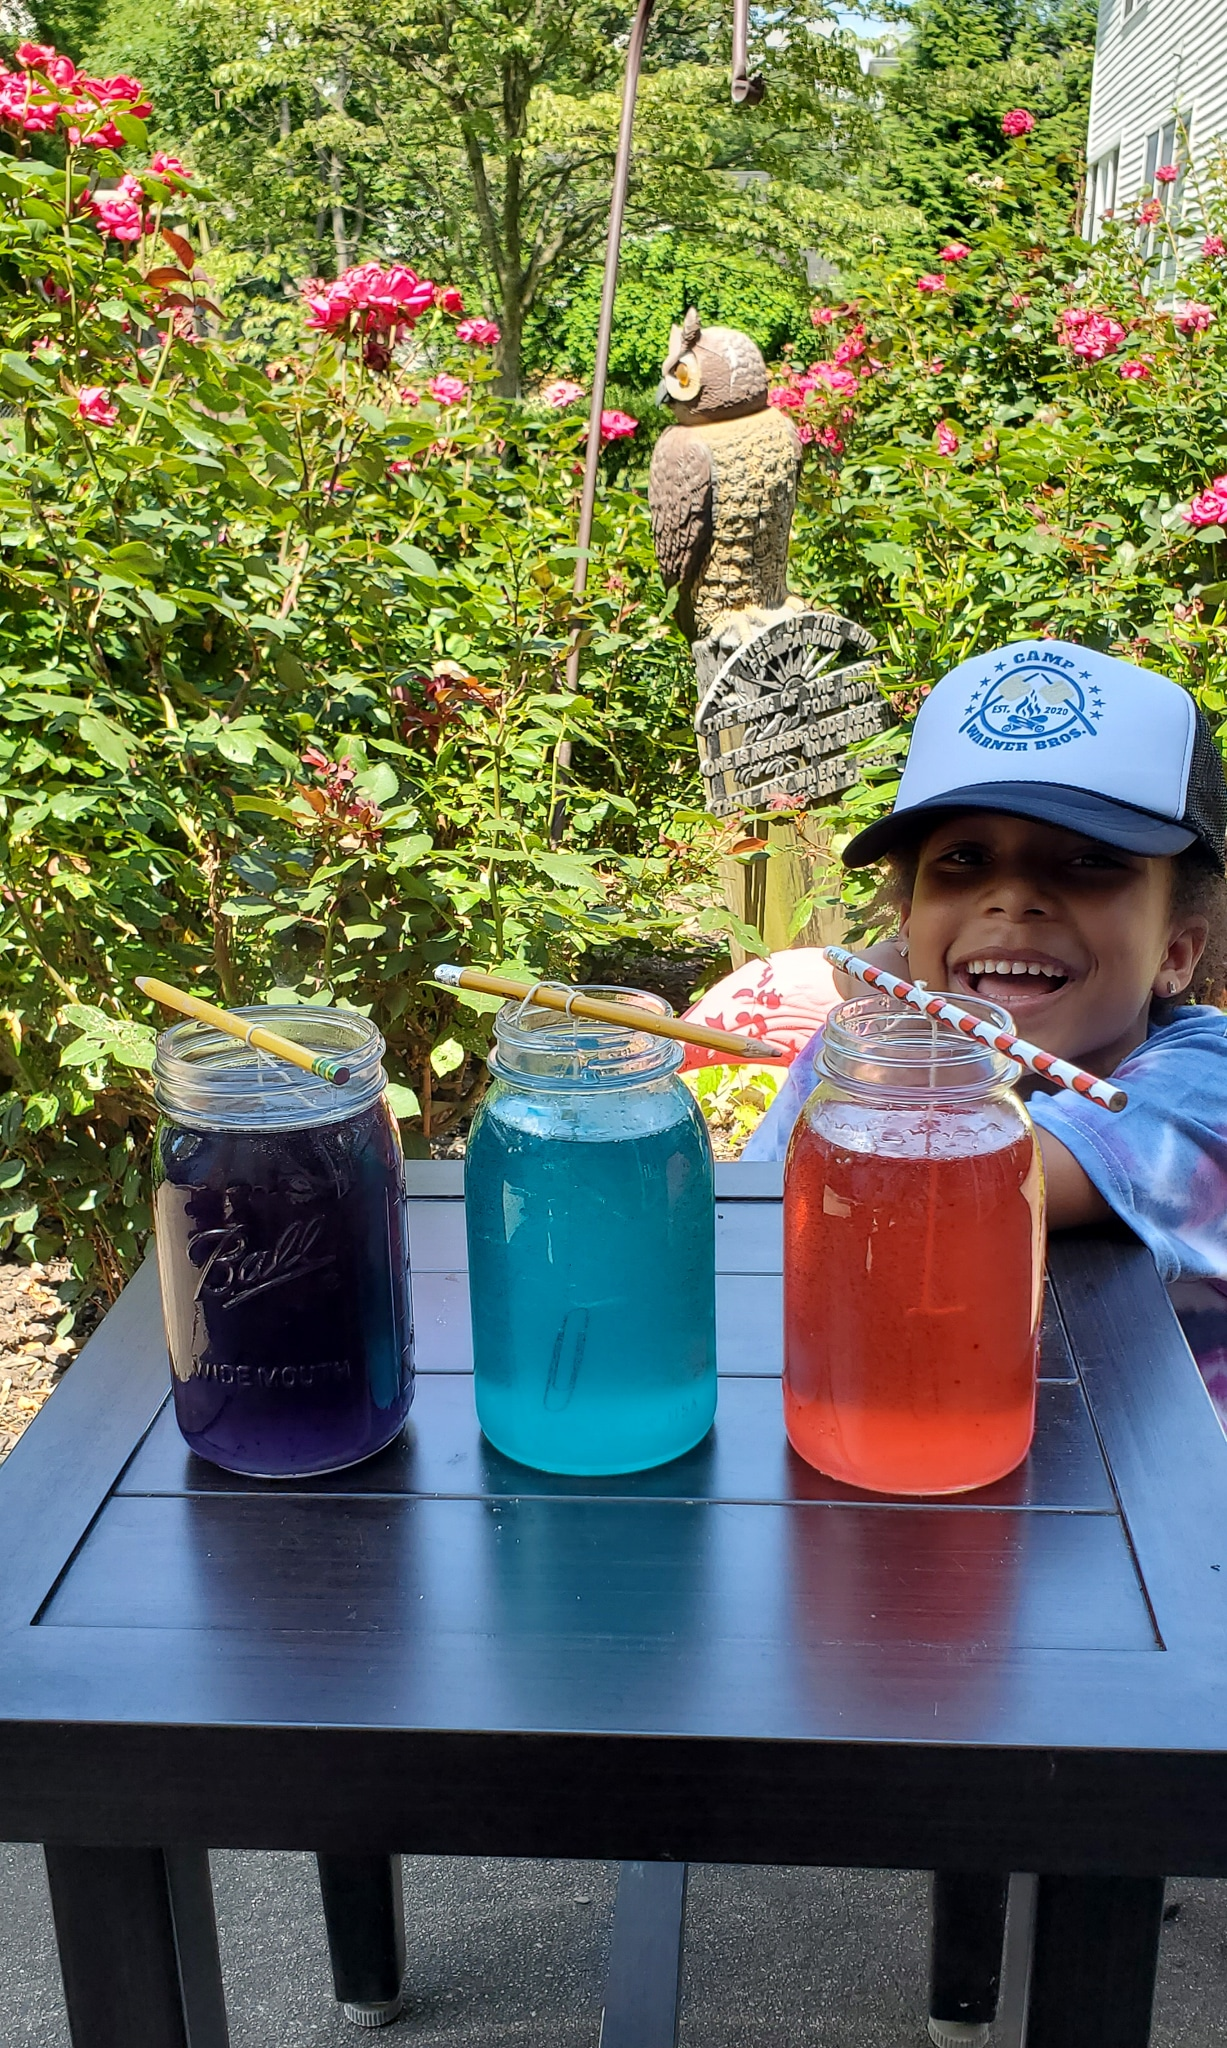 Crystal Gem Candy Jars Esuun. Grow your very own Crystal Gem Candy at home! Inspired by Stephen Universe Crystal Gem's a sugary treat that doubles as a science experiment, you can create and watch your very own candy gems grow day by day.